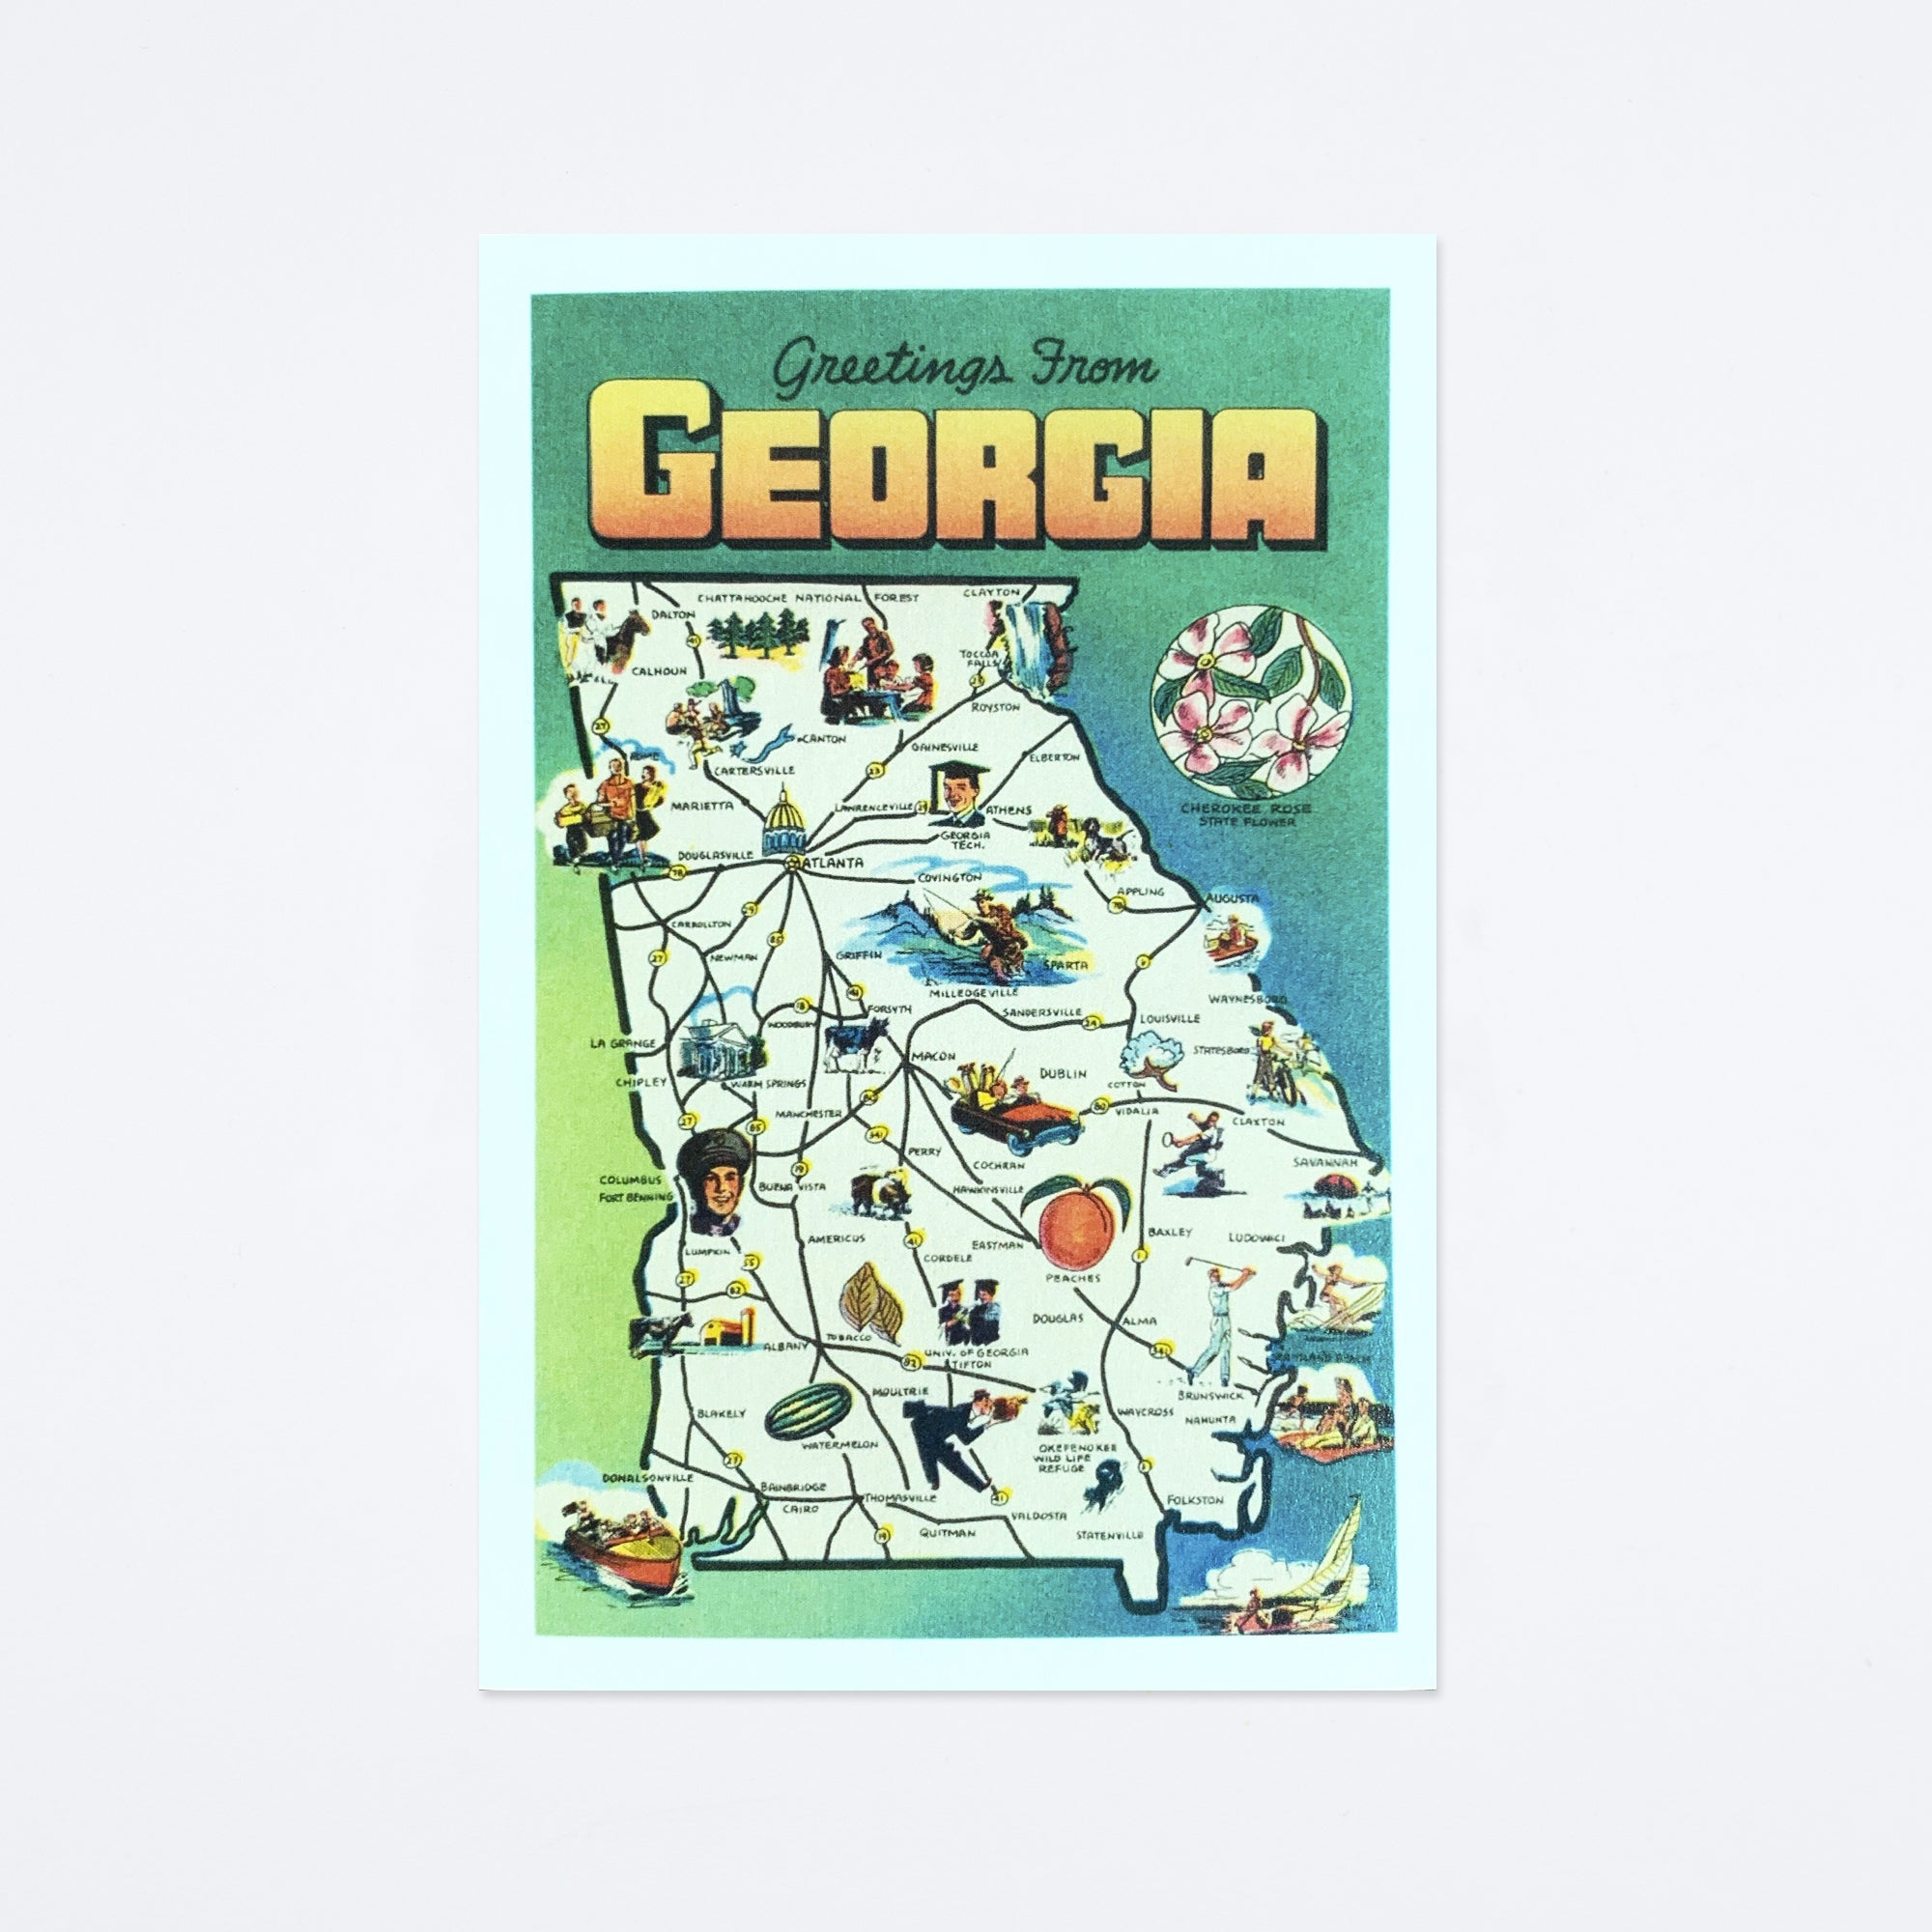 Greetings from Georgia Map Postcard